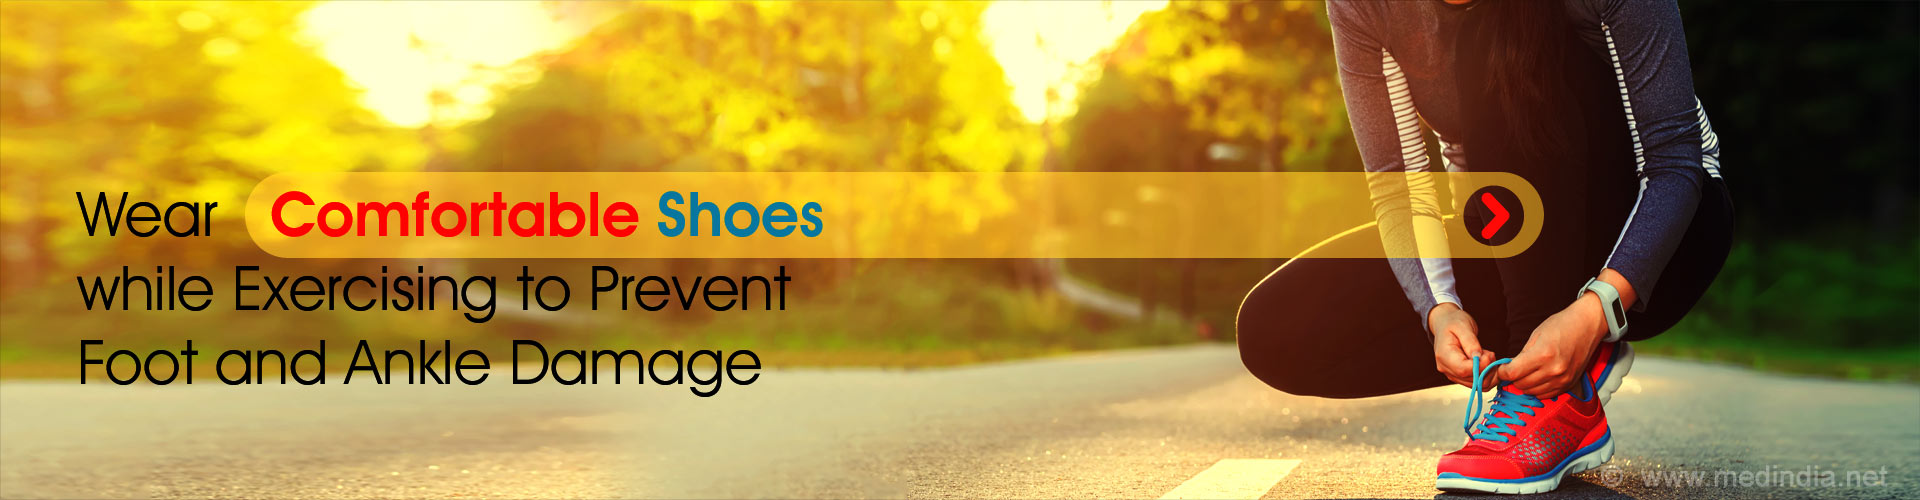 Wear Comfortable Shoes while Exercising to Prevent Foot and Ankle Damage